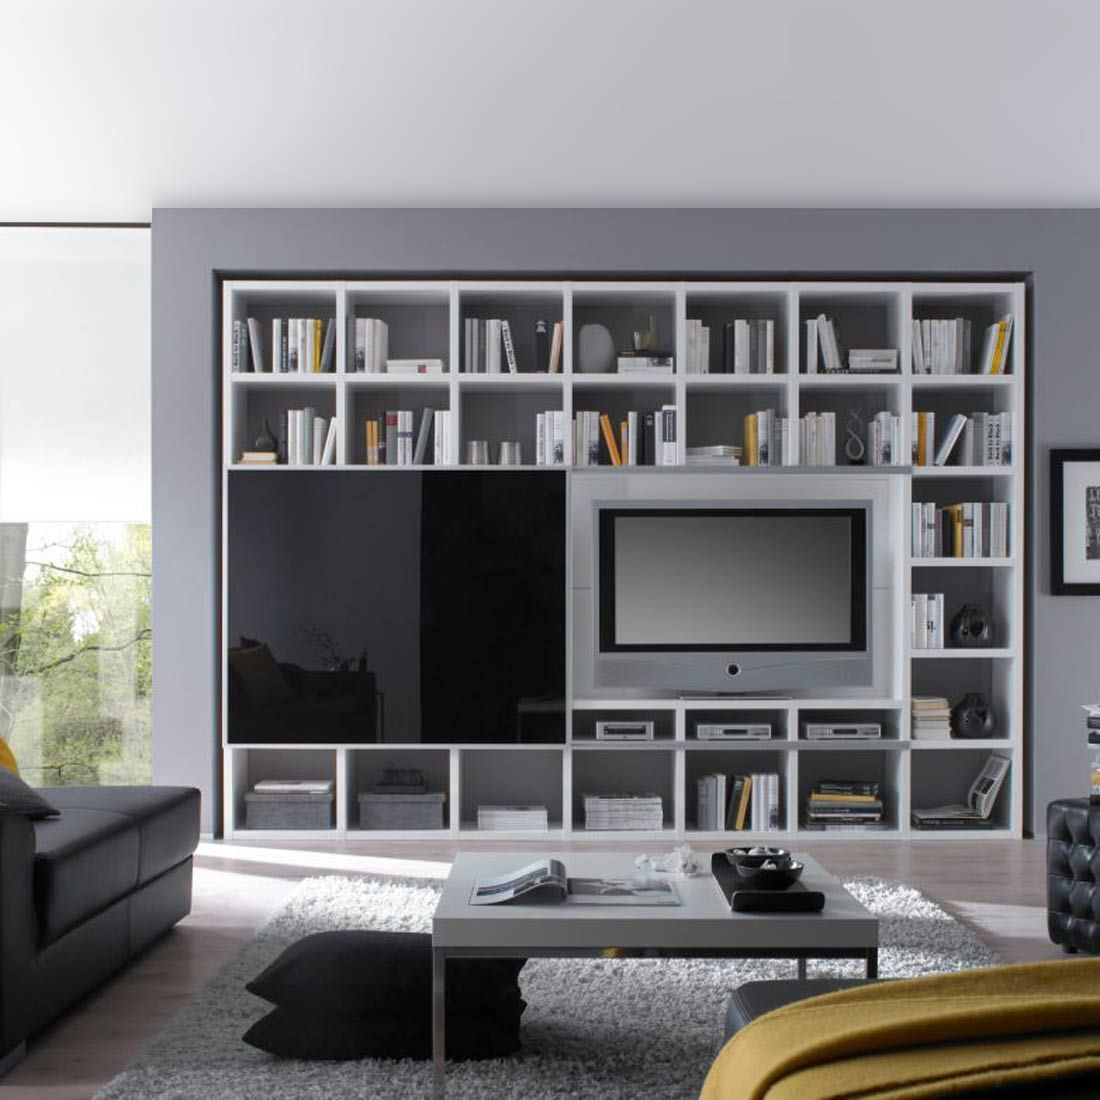 wohnwand empire wei hochglanz mit schwarzer. Black Bedroom Furniture Sets. Home Design Ideas